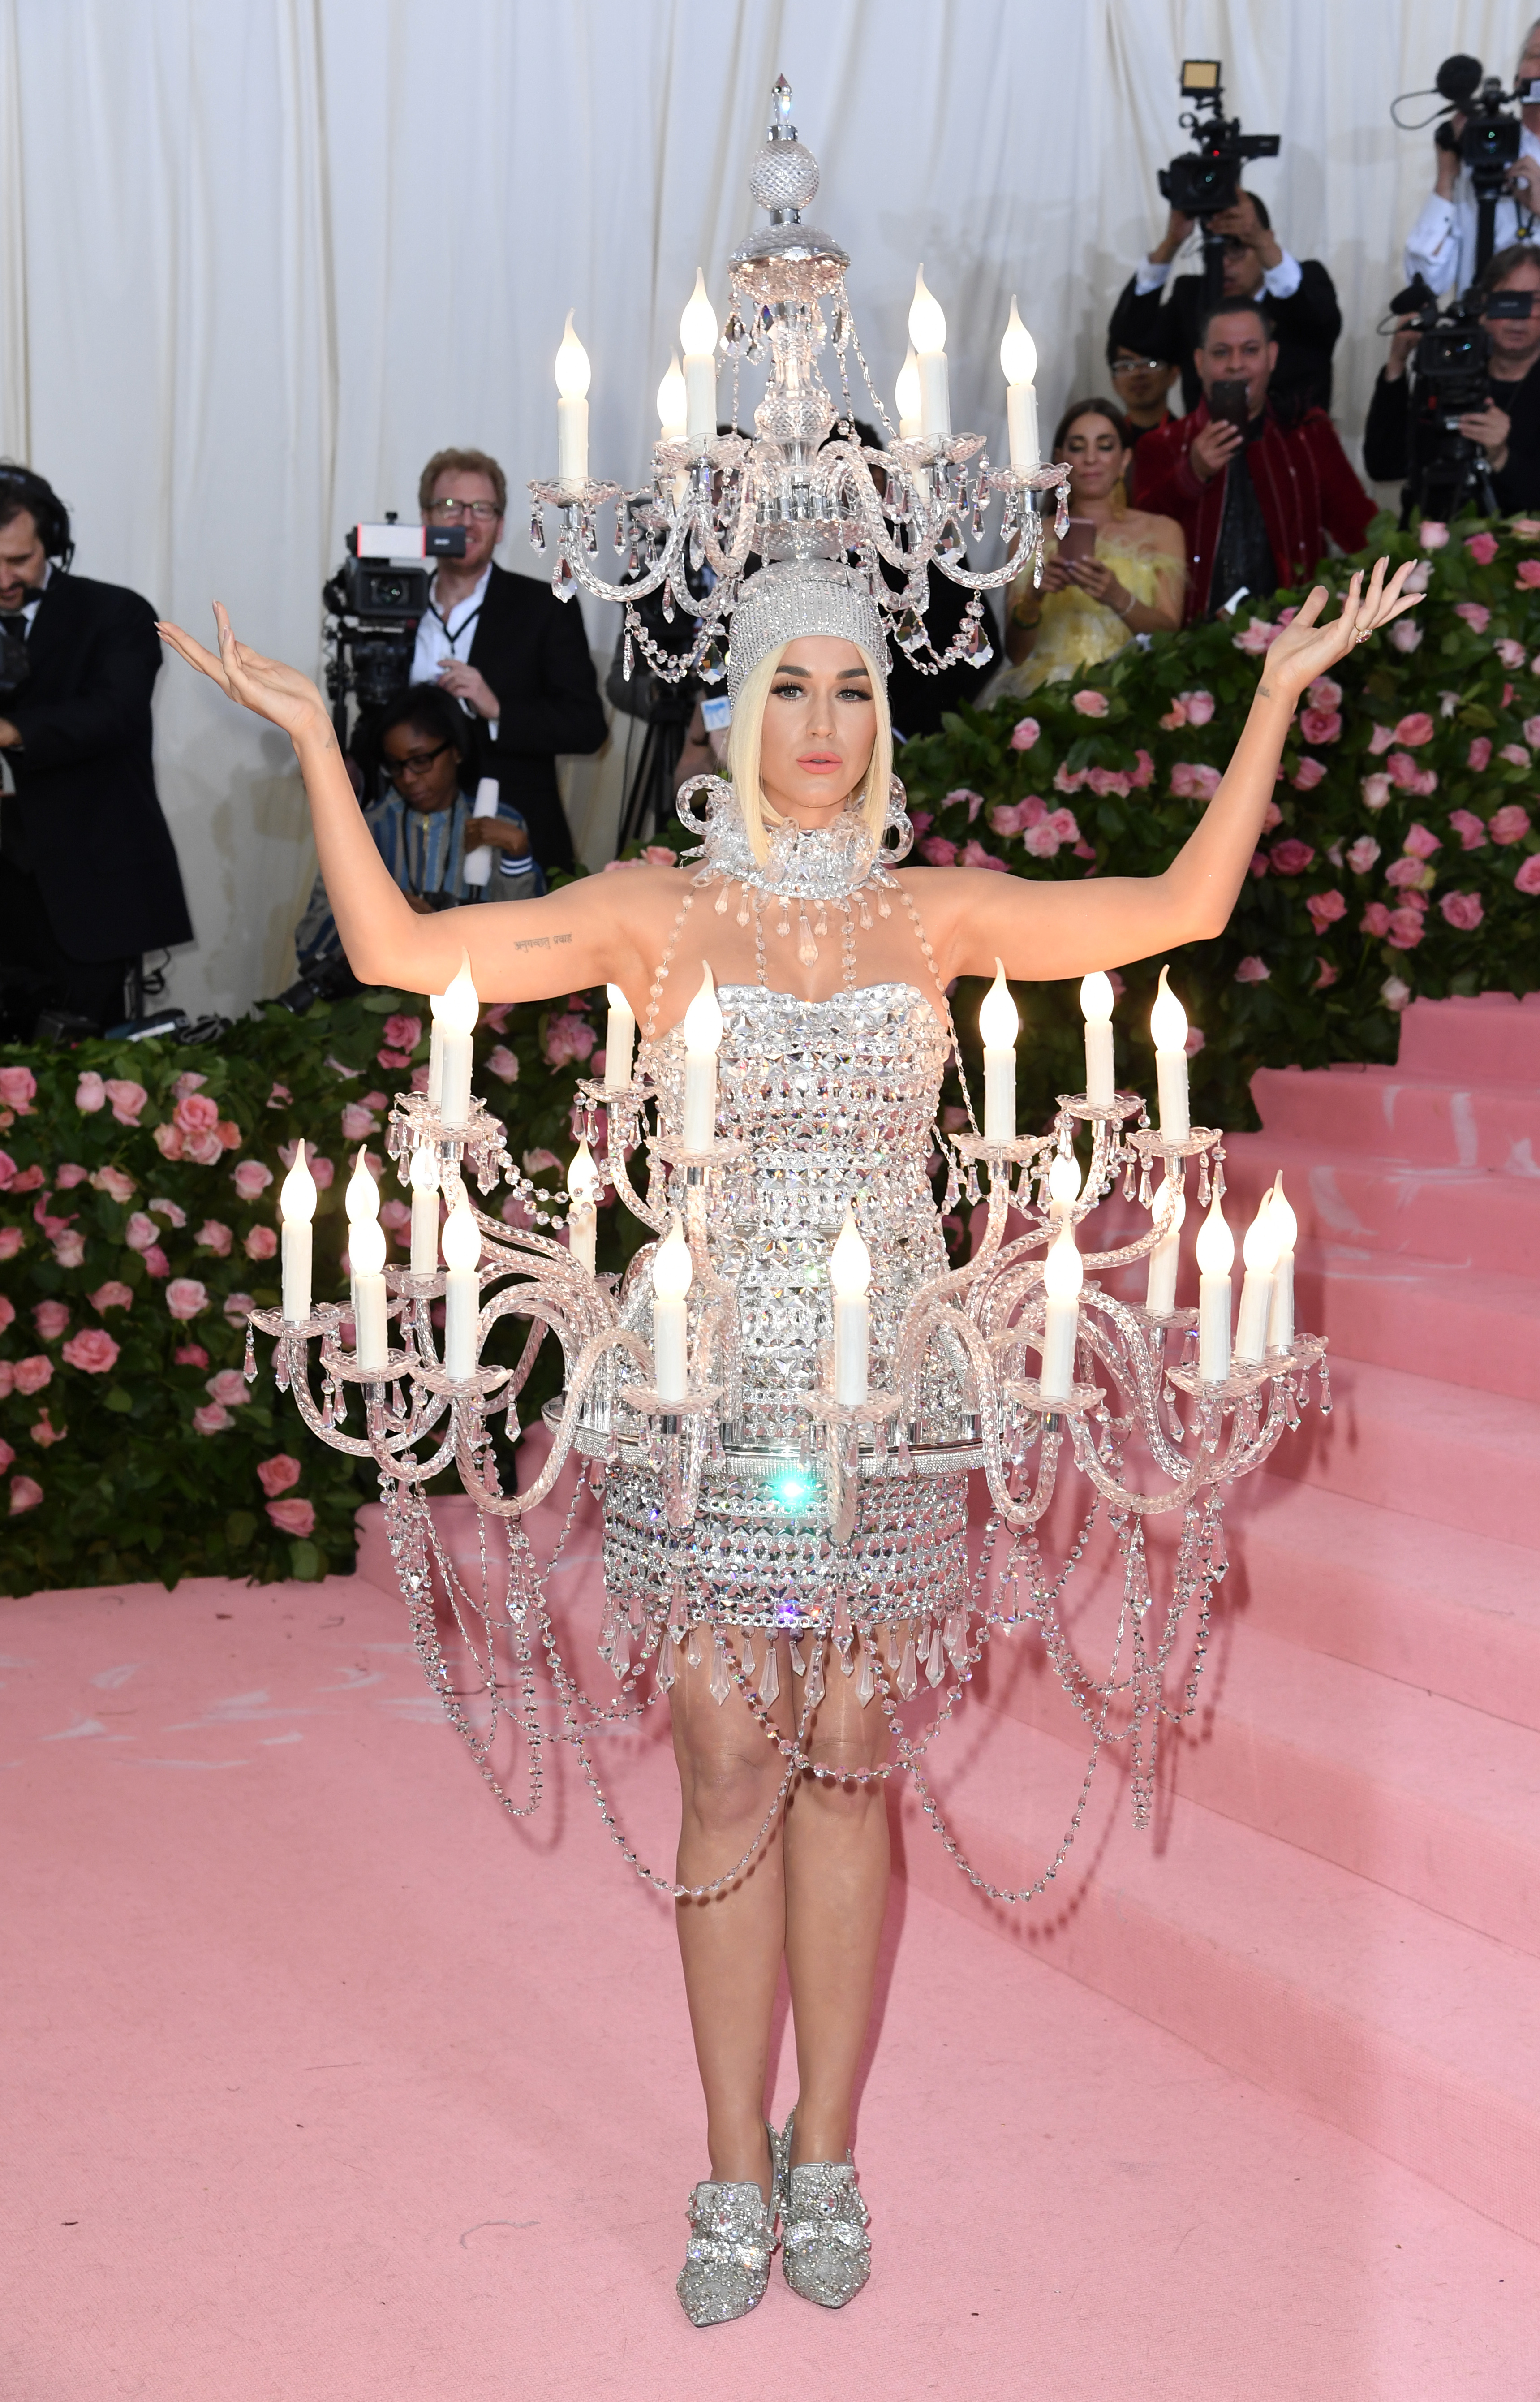 Katy Perry turned up as a light fixture. Credit: PA